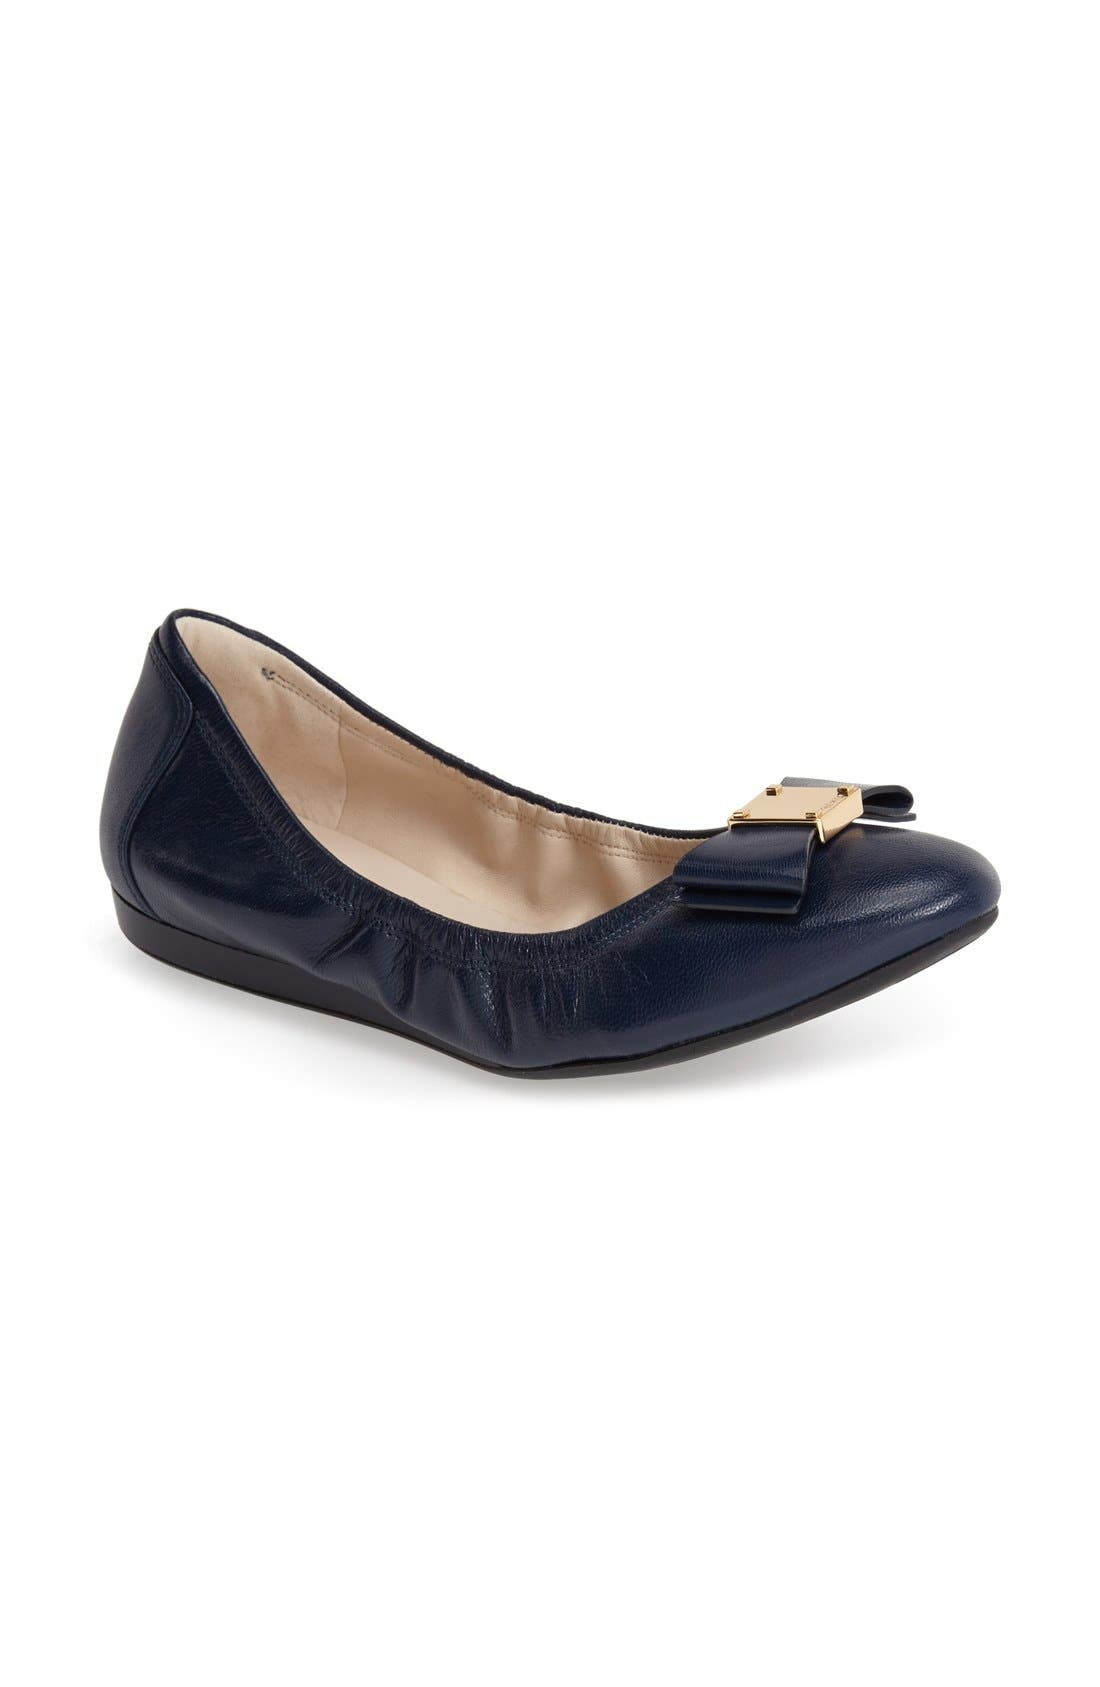 COLE HAAN 'Tali' Leather Ballet Flat